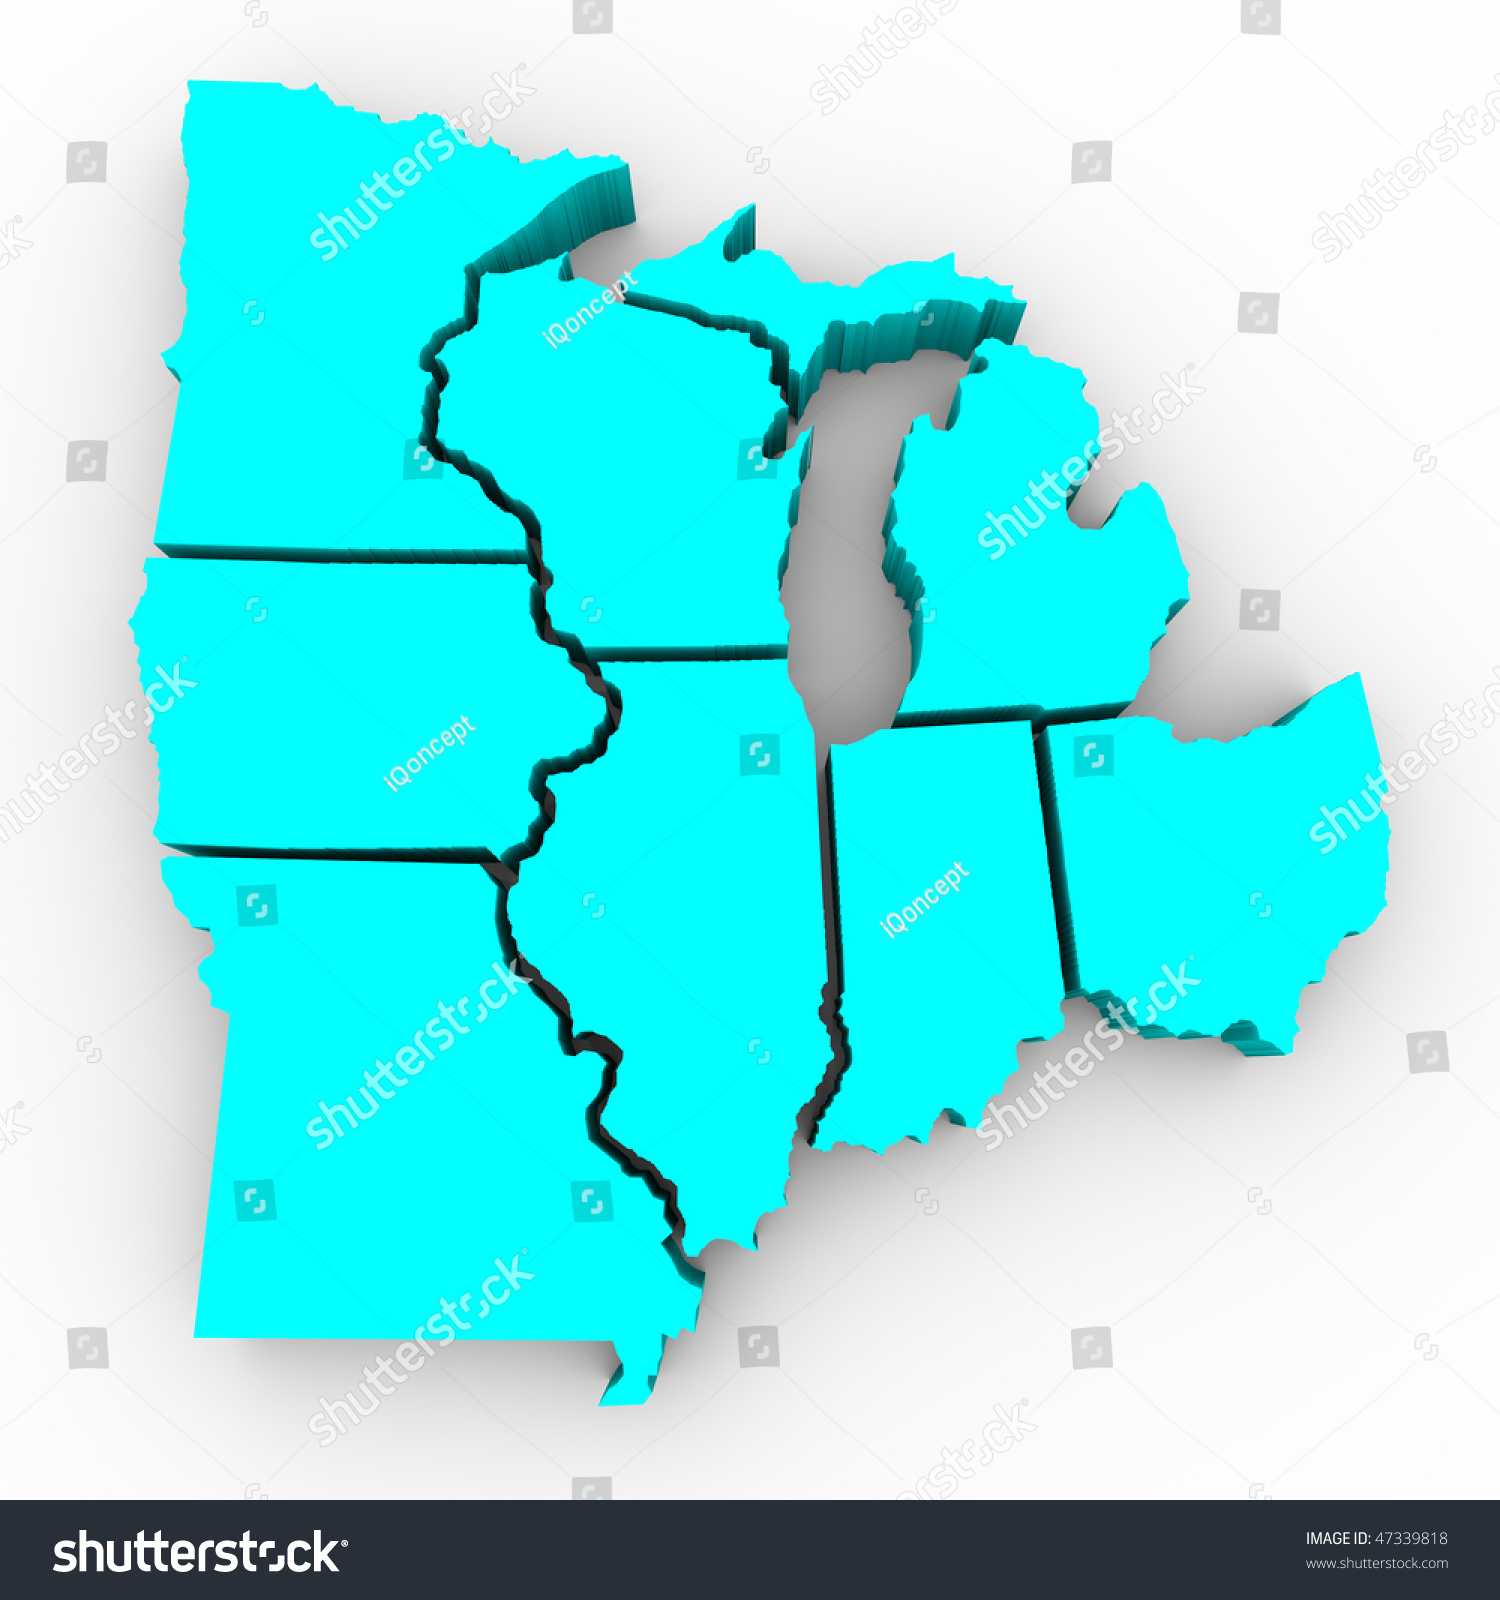 map minnesota.html with Stock Photo A D Map Of The Great Lakes Region Of States Michigan Ohio Indiana Illinois Minnesota on Forest Lake Minnesota furthermore Apple Valley Minnesota additionally LocationPhotoDirectLink G43608 D1147935 I133116983 Chase on the Lake Walker Minnesota additionally Attraction Review G43519 D266407 Reviews Valleyfair Shakopee Minnesota furthermore Population Map Minnesota.